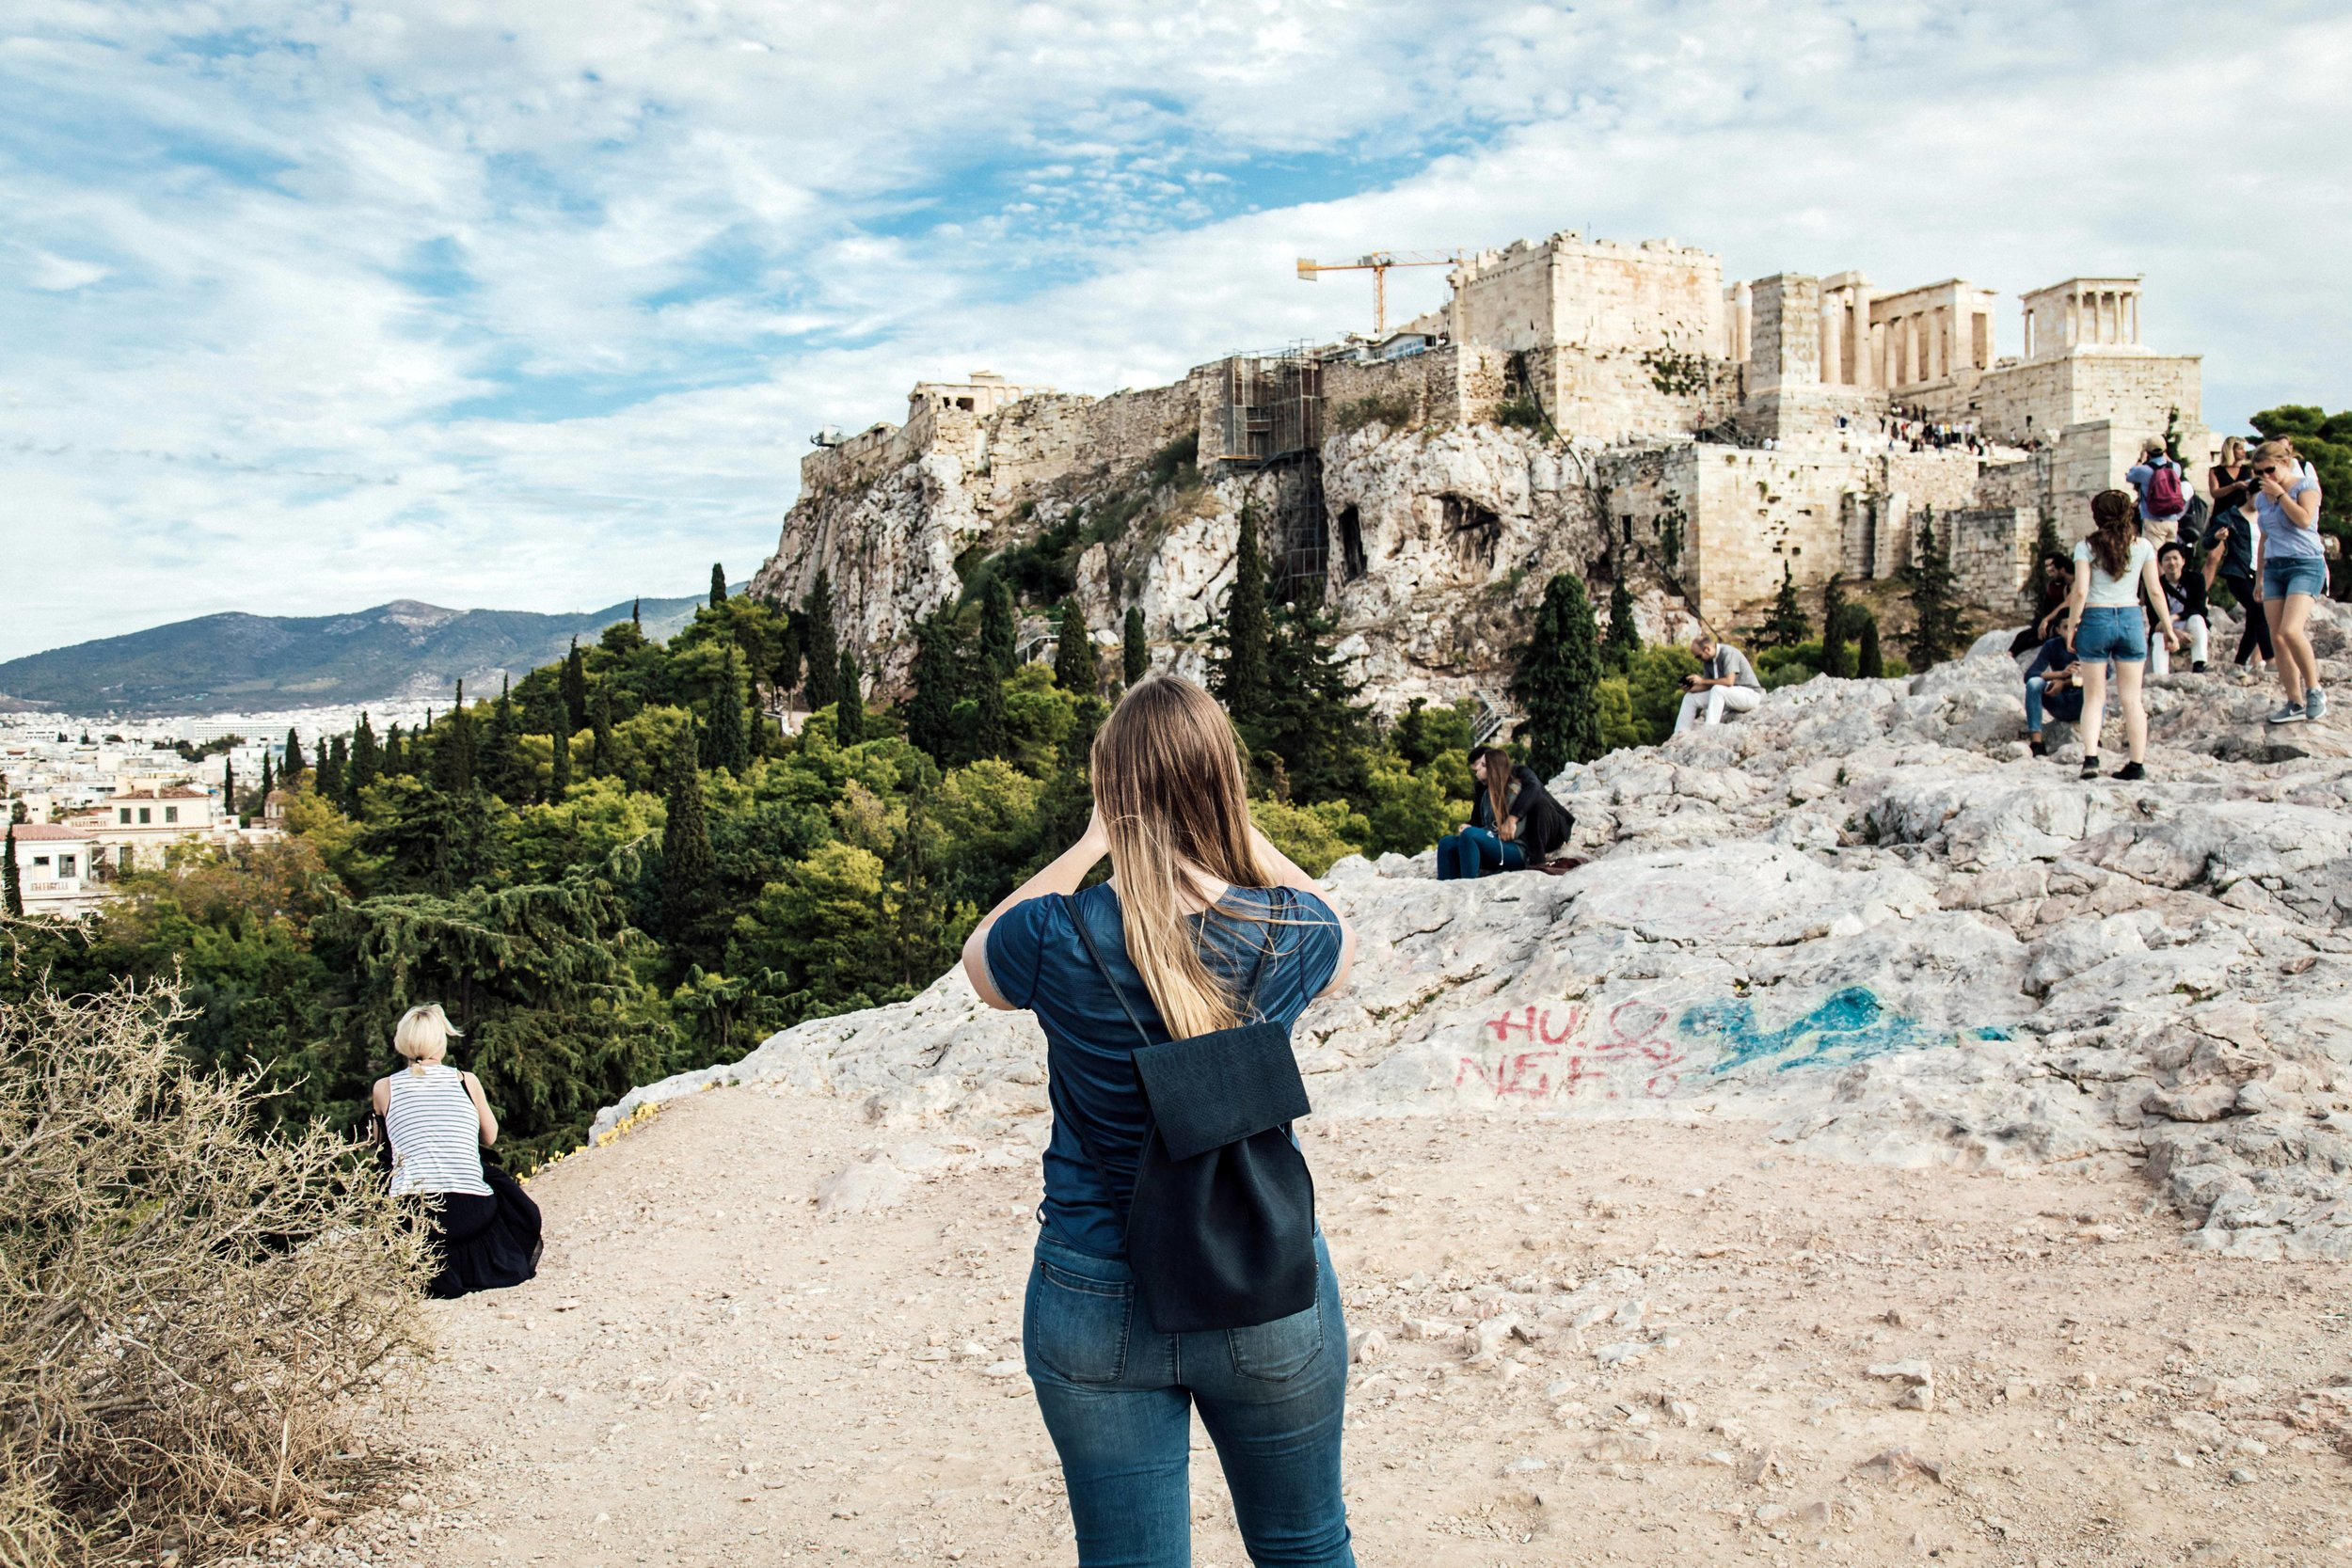 Travel_Photography_01_Athens-Greece (12)-min.jpg